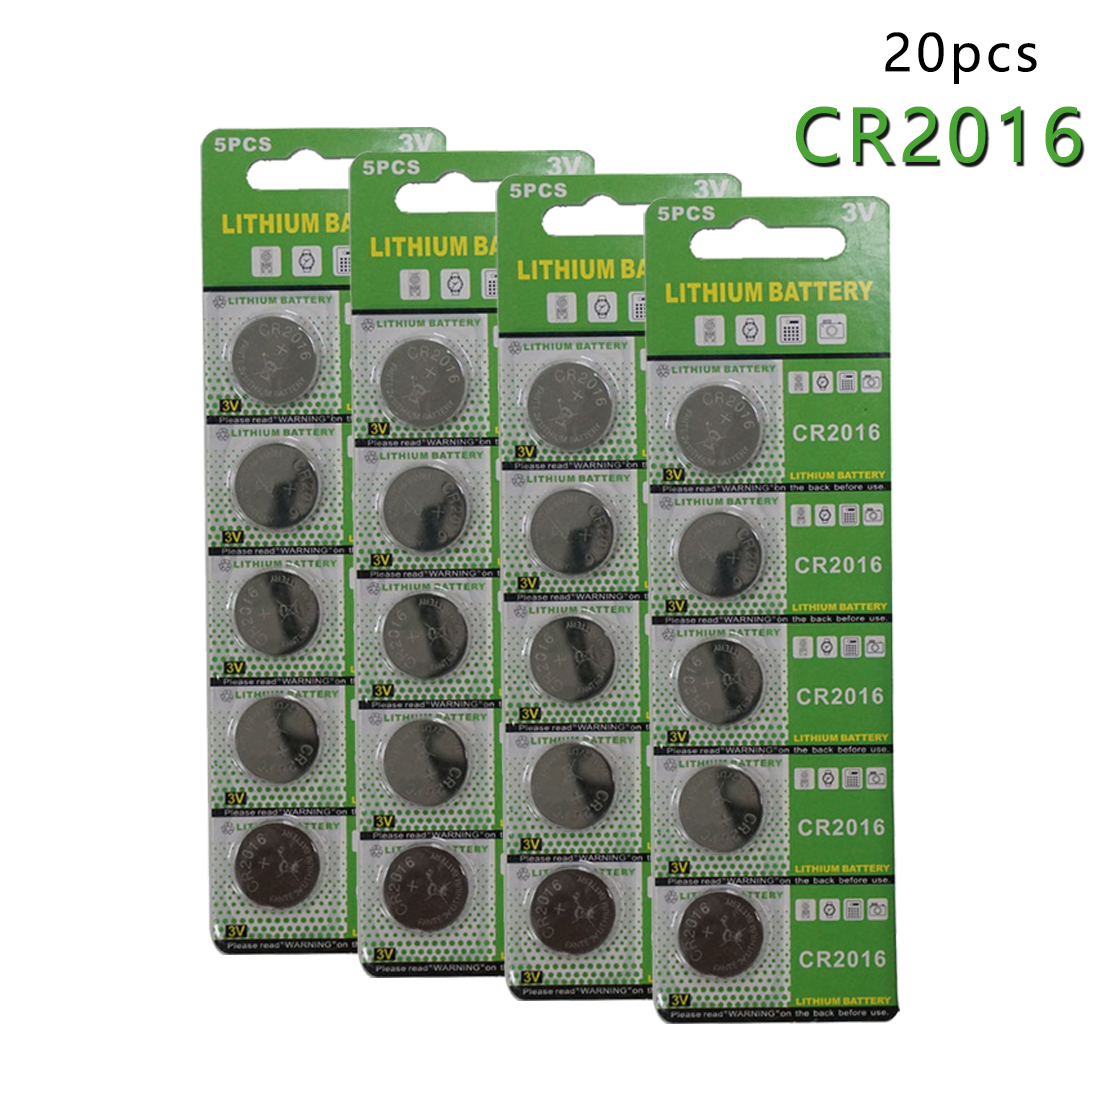 Centechia Top Sale 20Pcs CR2017 3V Cell Battery Button Battery ,Coin Battery,cr 2017 lithium battery ...